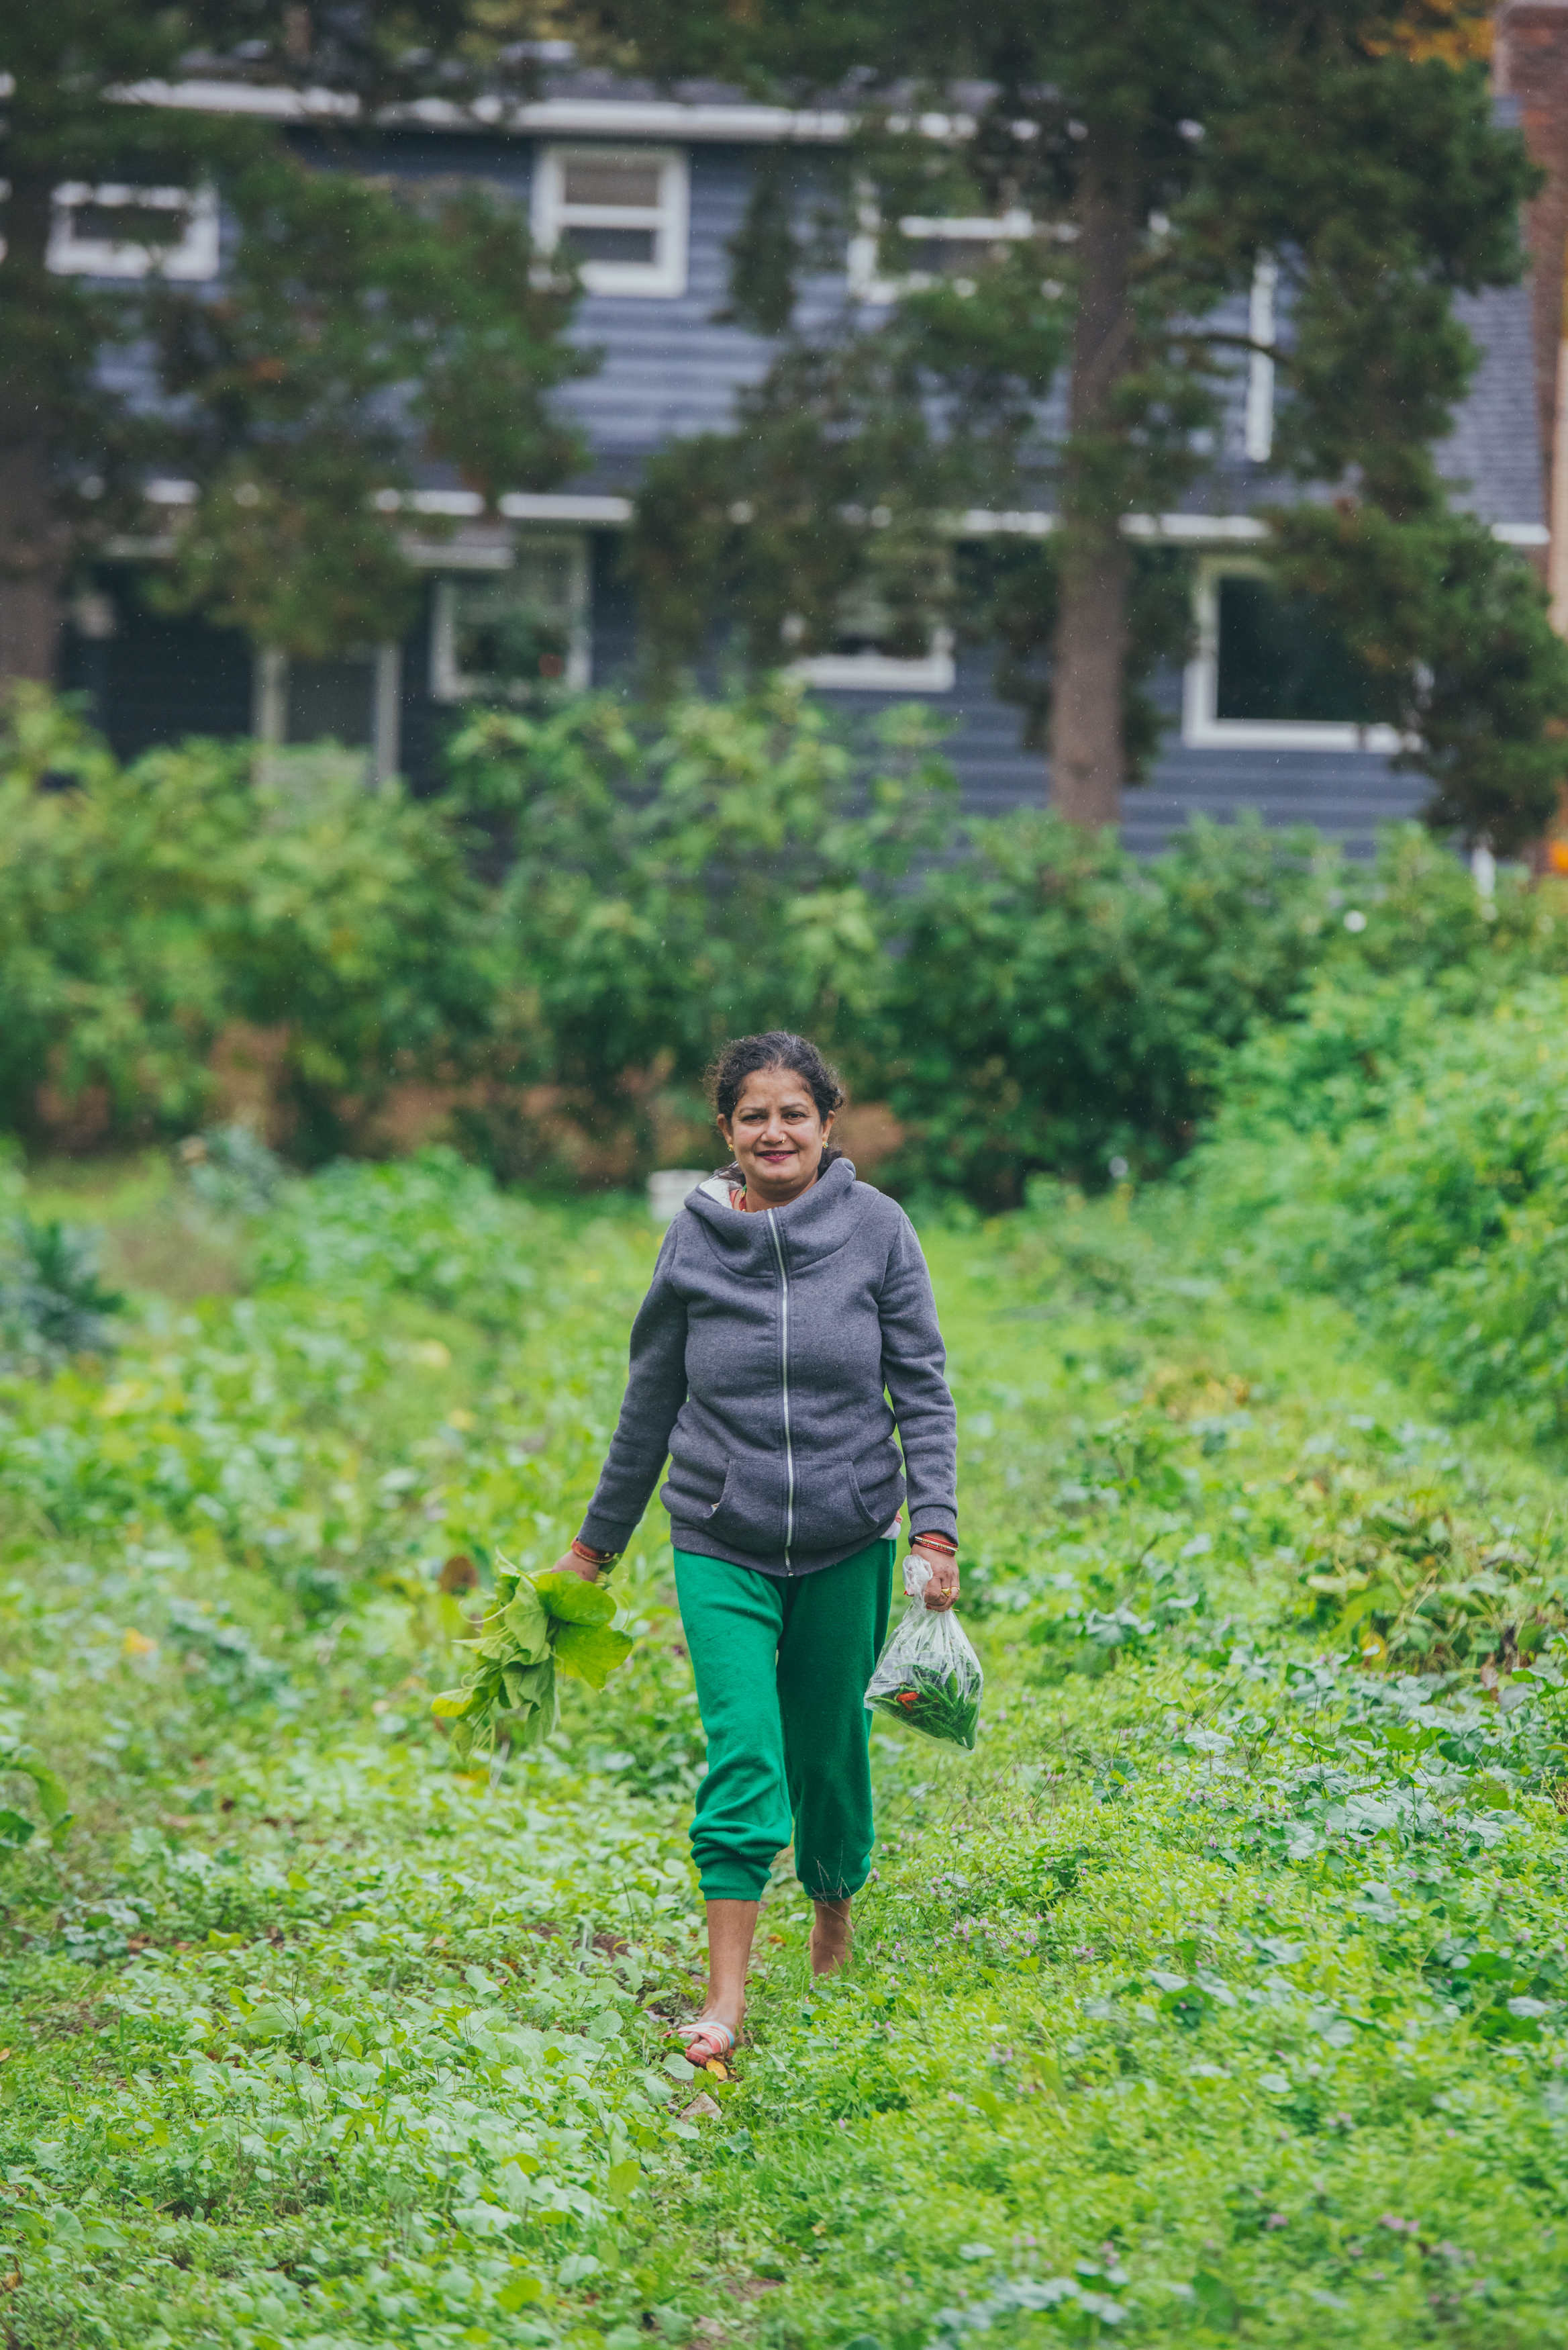 Refuge Garden - Mercy Corps NW Another Look 10-30-15 2015-27.jpg